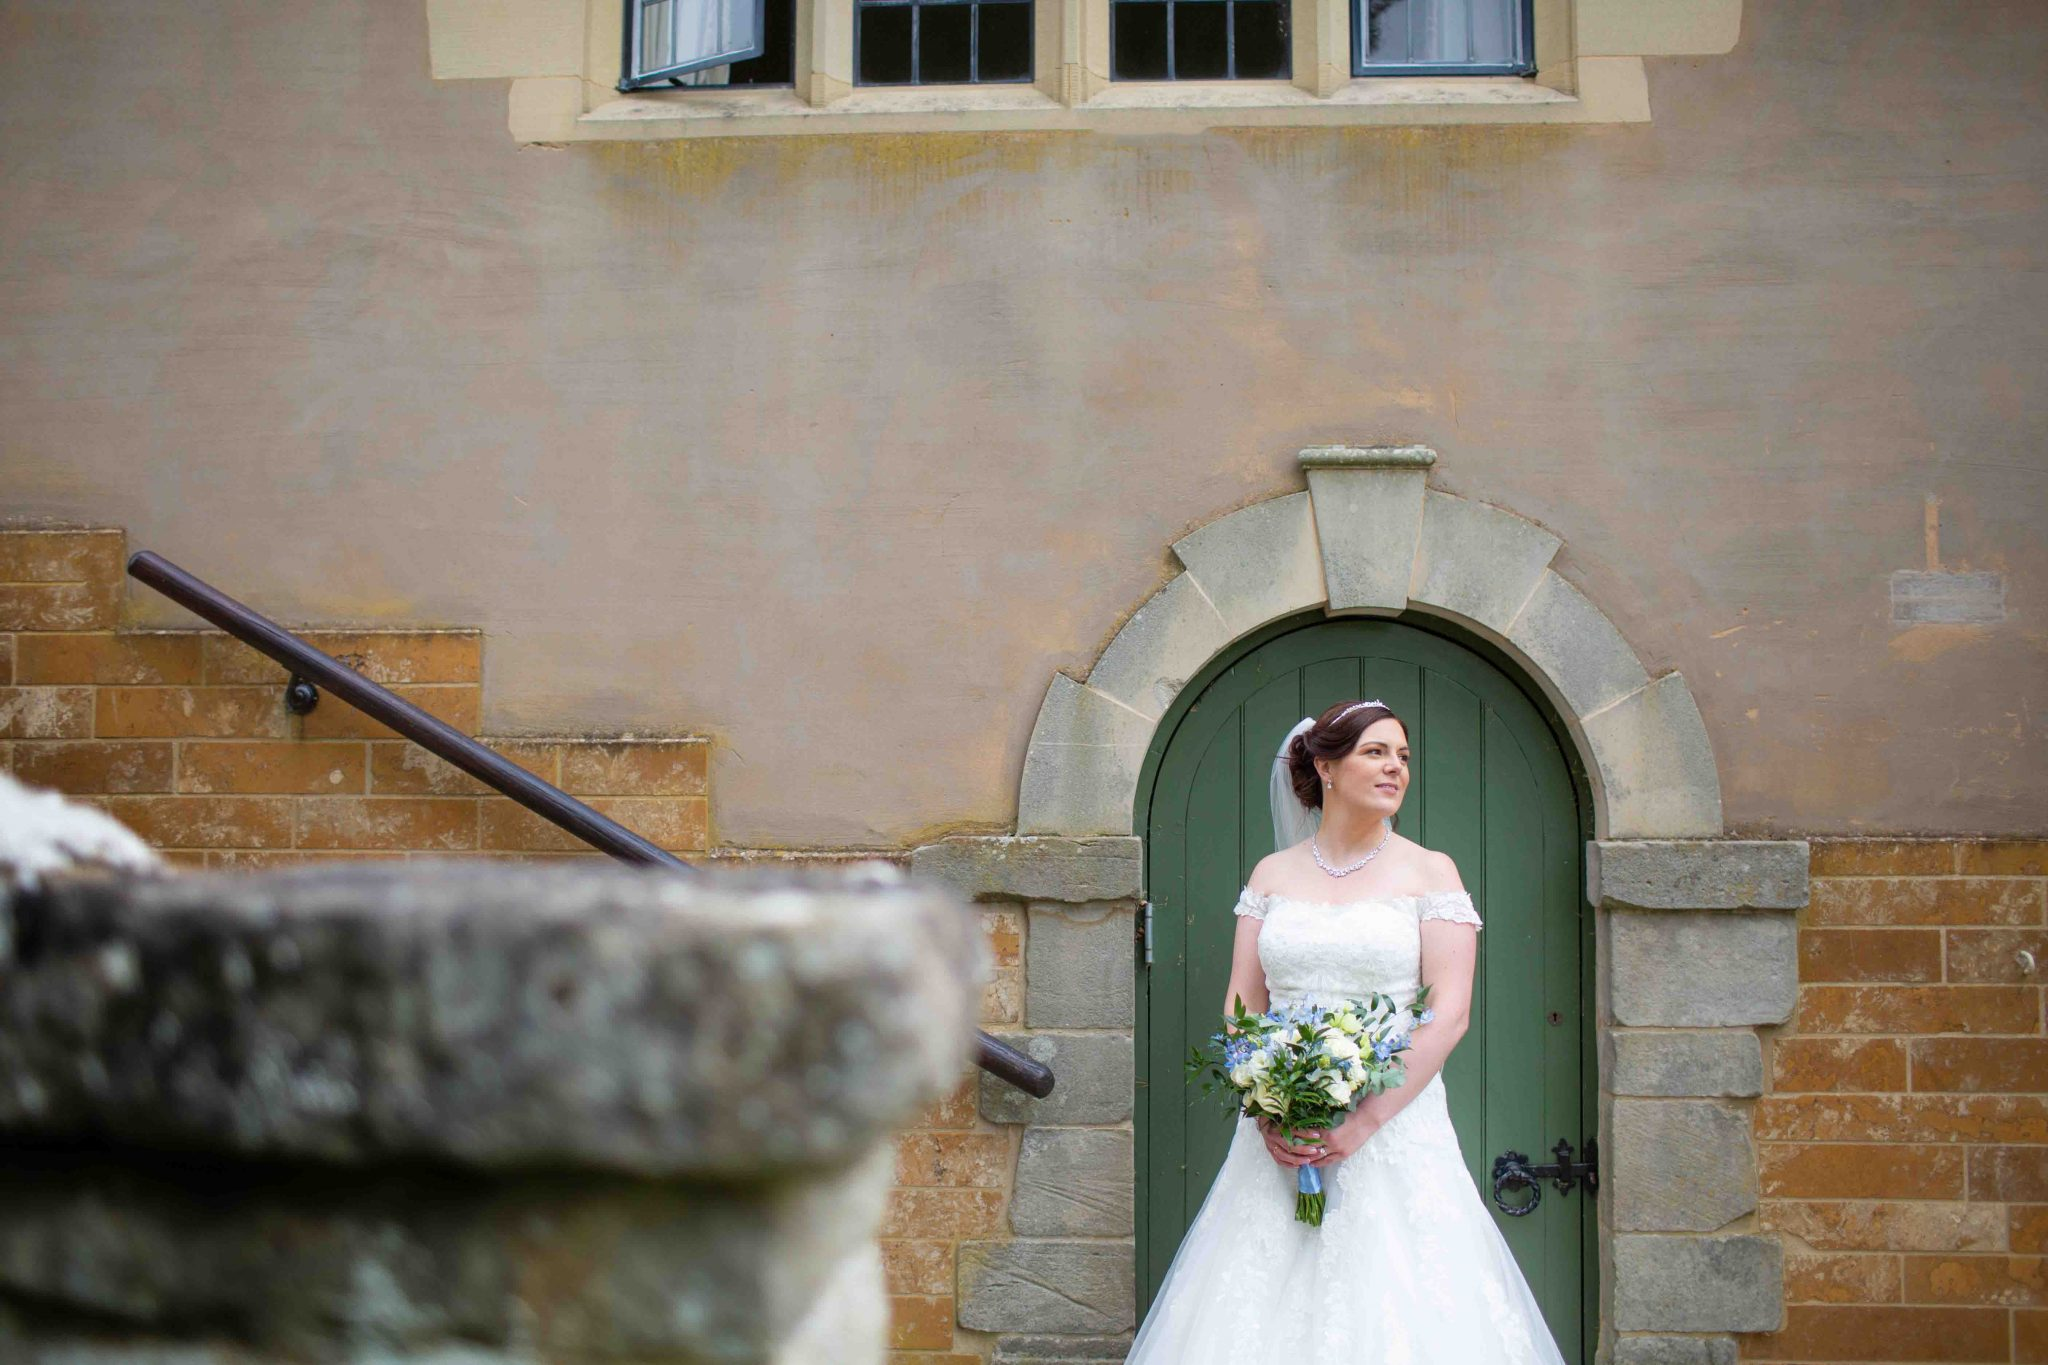 Wedding Photography at Mallory Court.